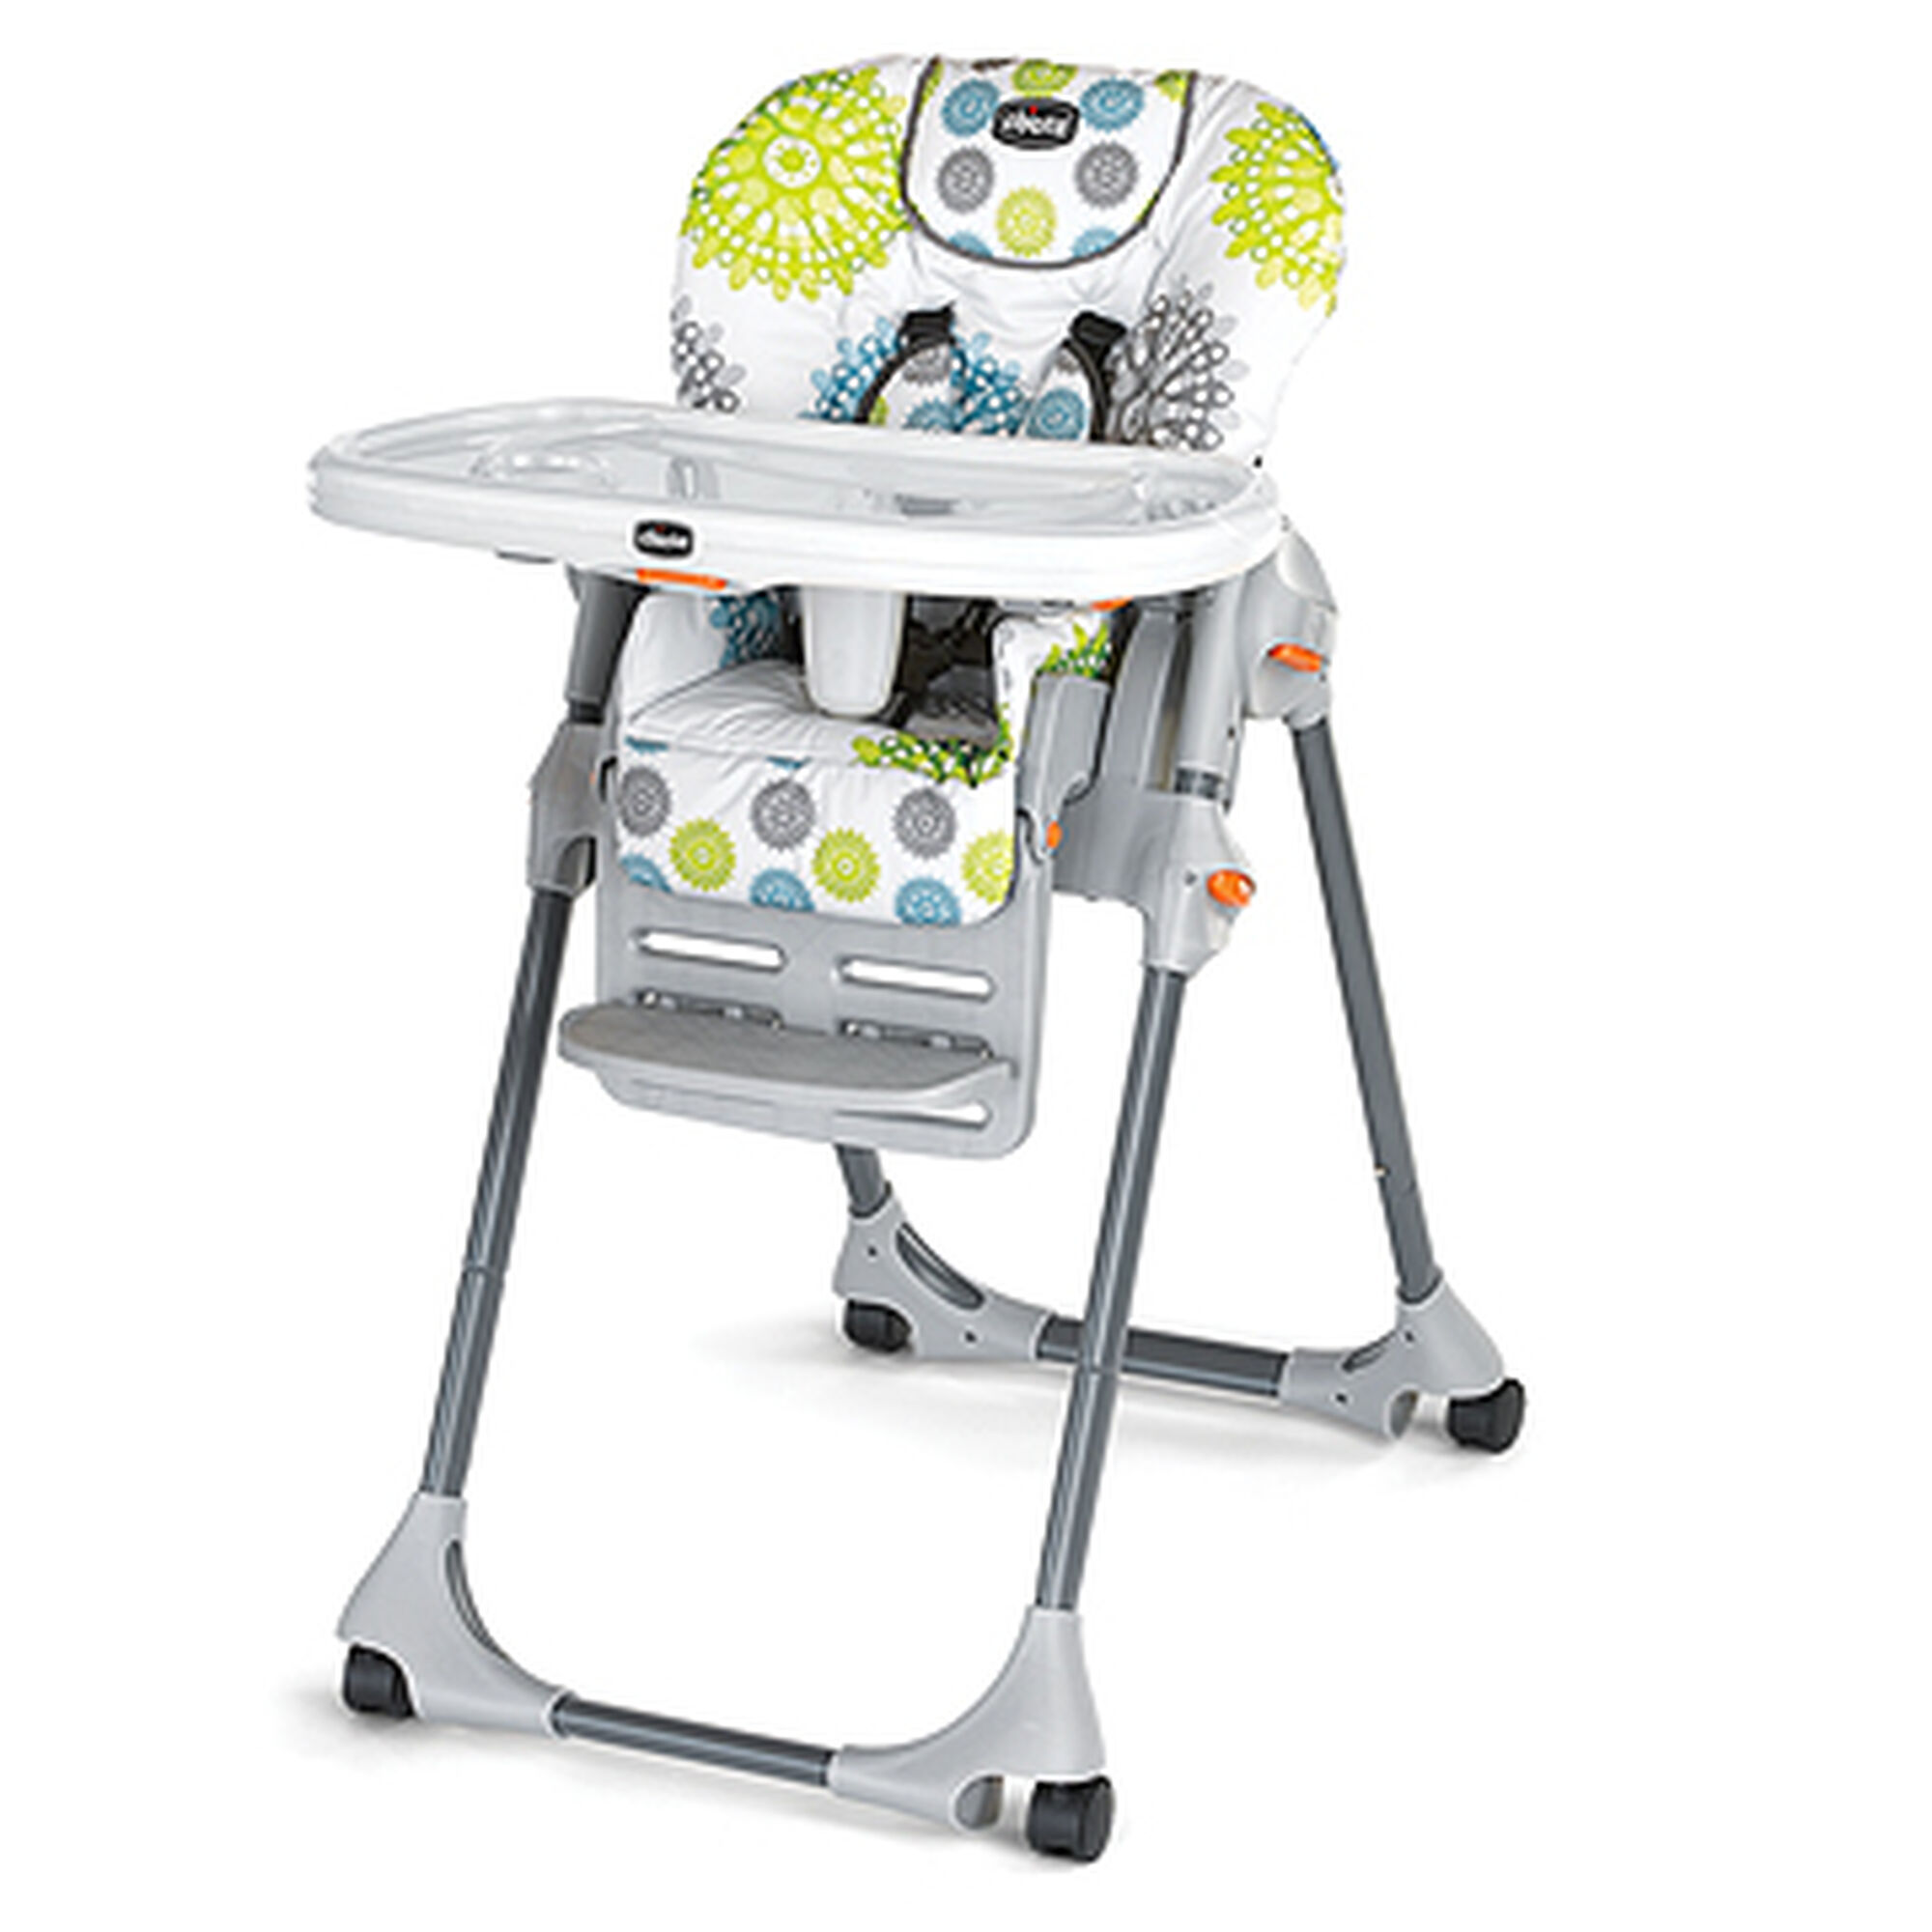 Chicco Polly Se Highchair In A Bright Citrus Green Aqua And Gray Patterned Fabric